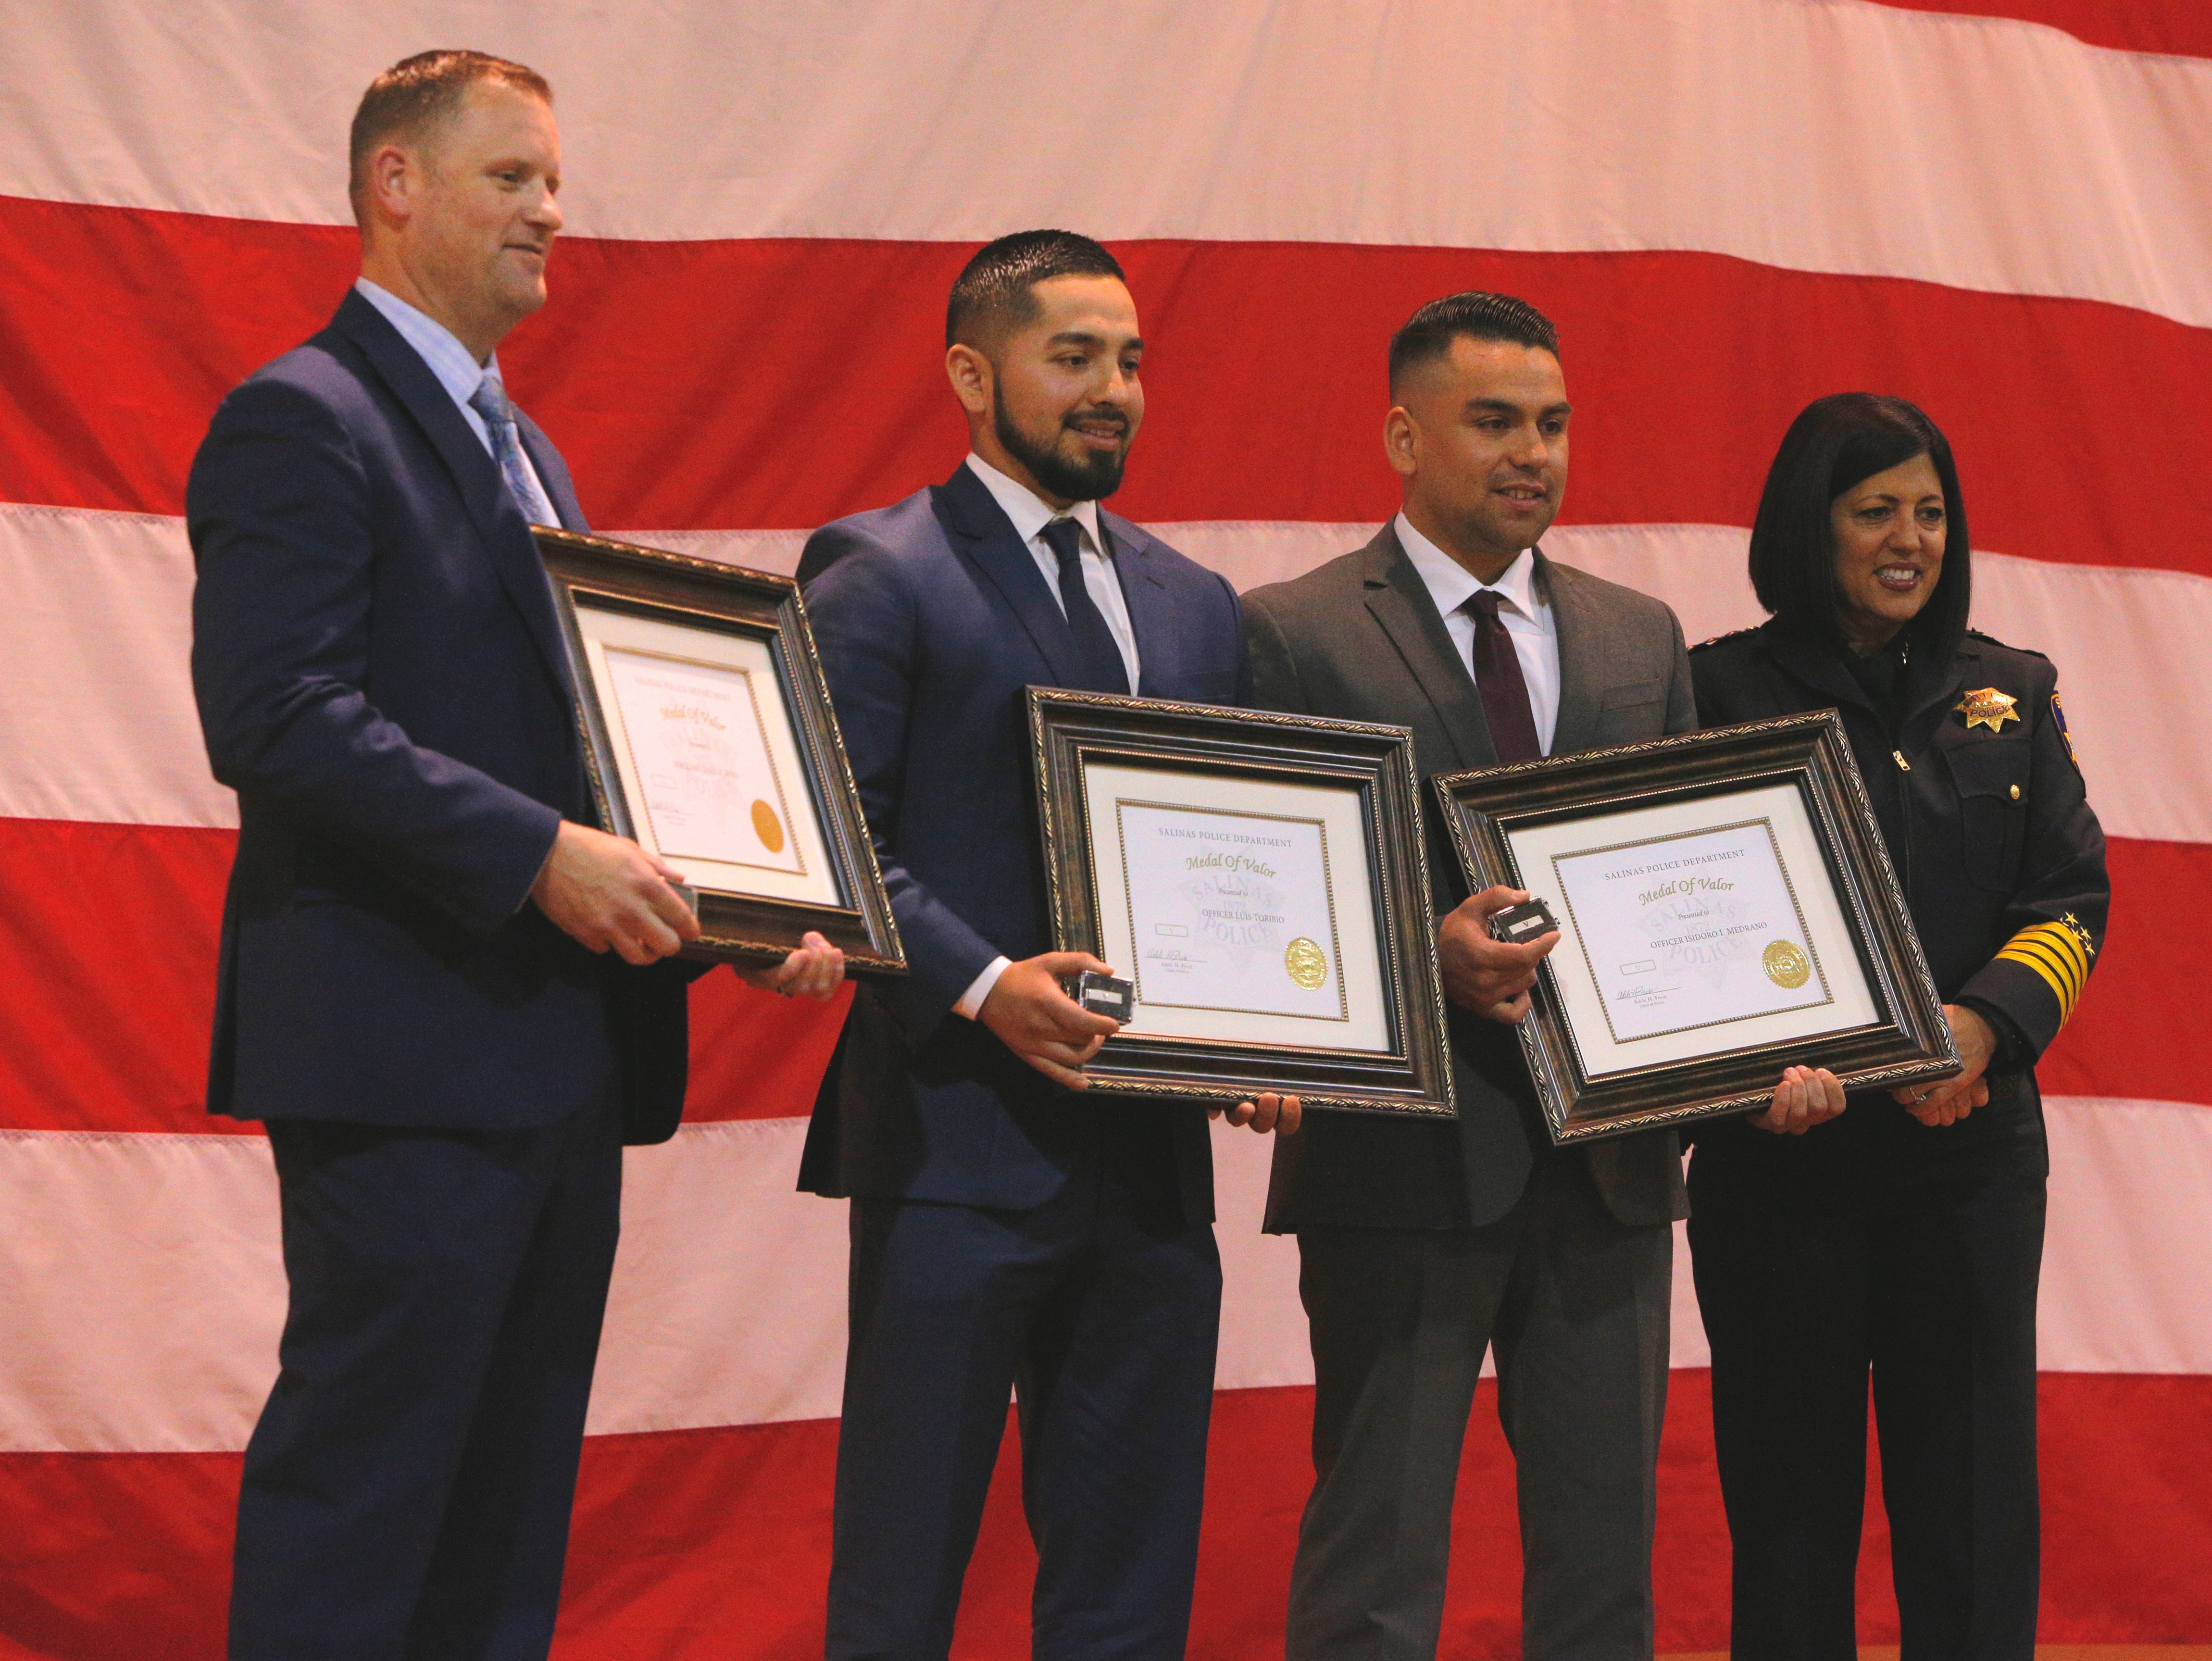 (From left): Sgt. Dale Fors, Officer Luis Toribio and Officer Isidoro Medrano pose with their awards alongside police chief Adele Fresé March 14, 2019, at the Salinas Police Department's 2018 awards ceremony.